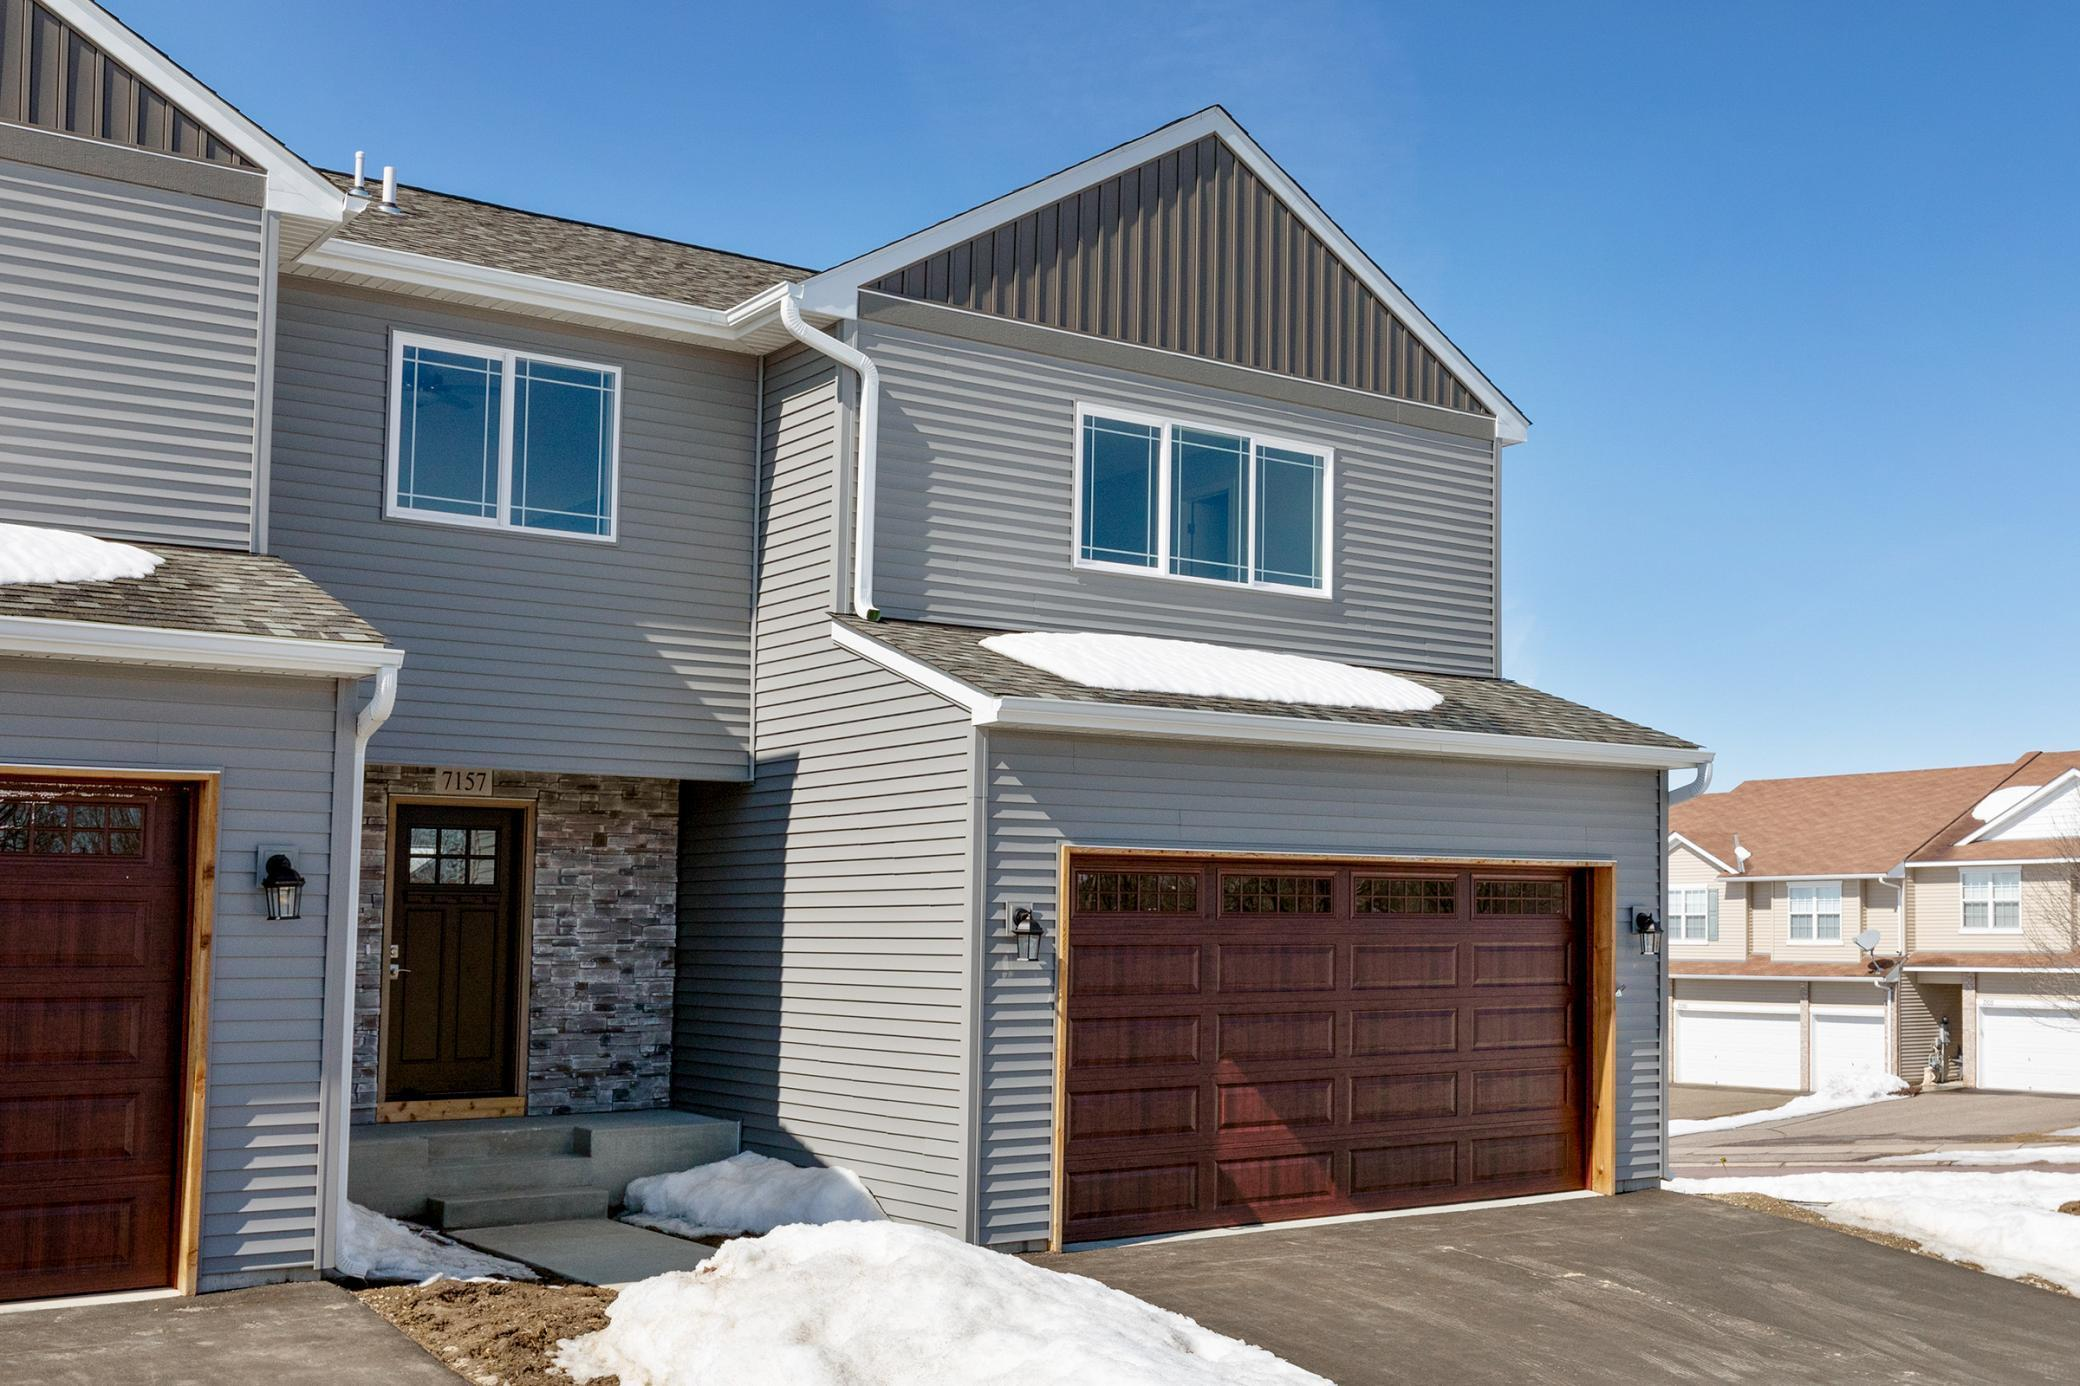 7134 Kilkenny Way Property Photo - Greenfield, MN real estate listing